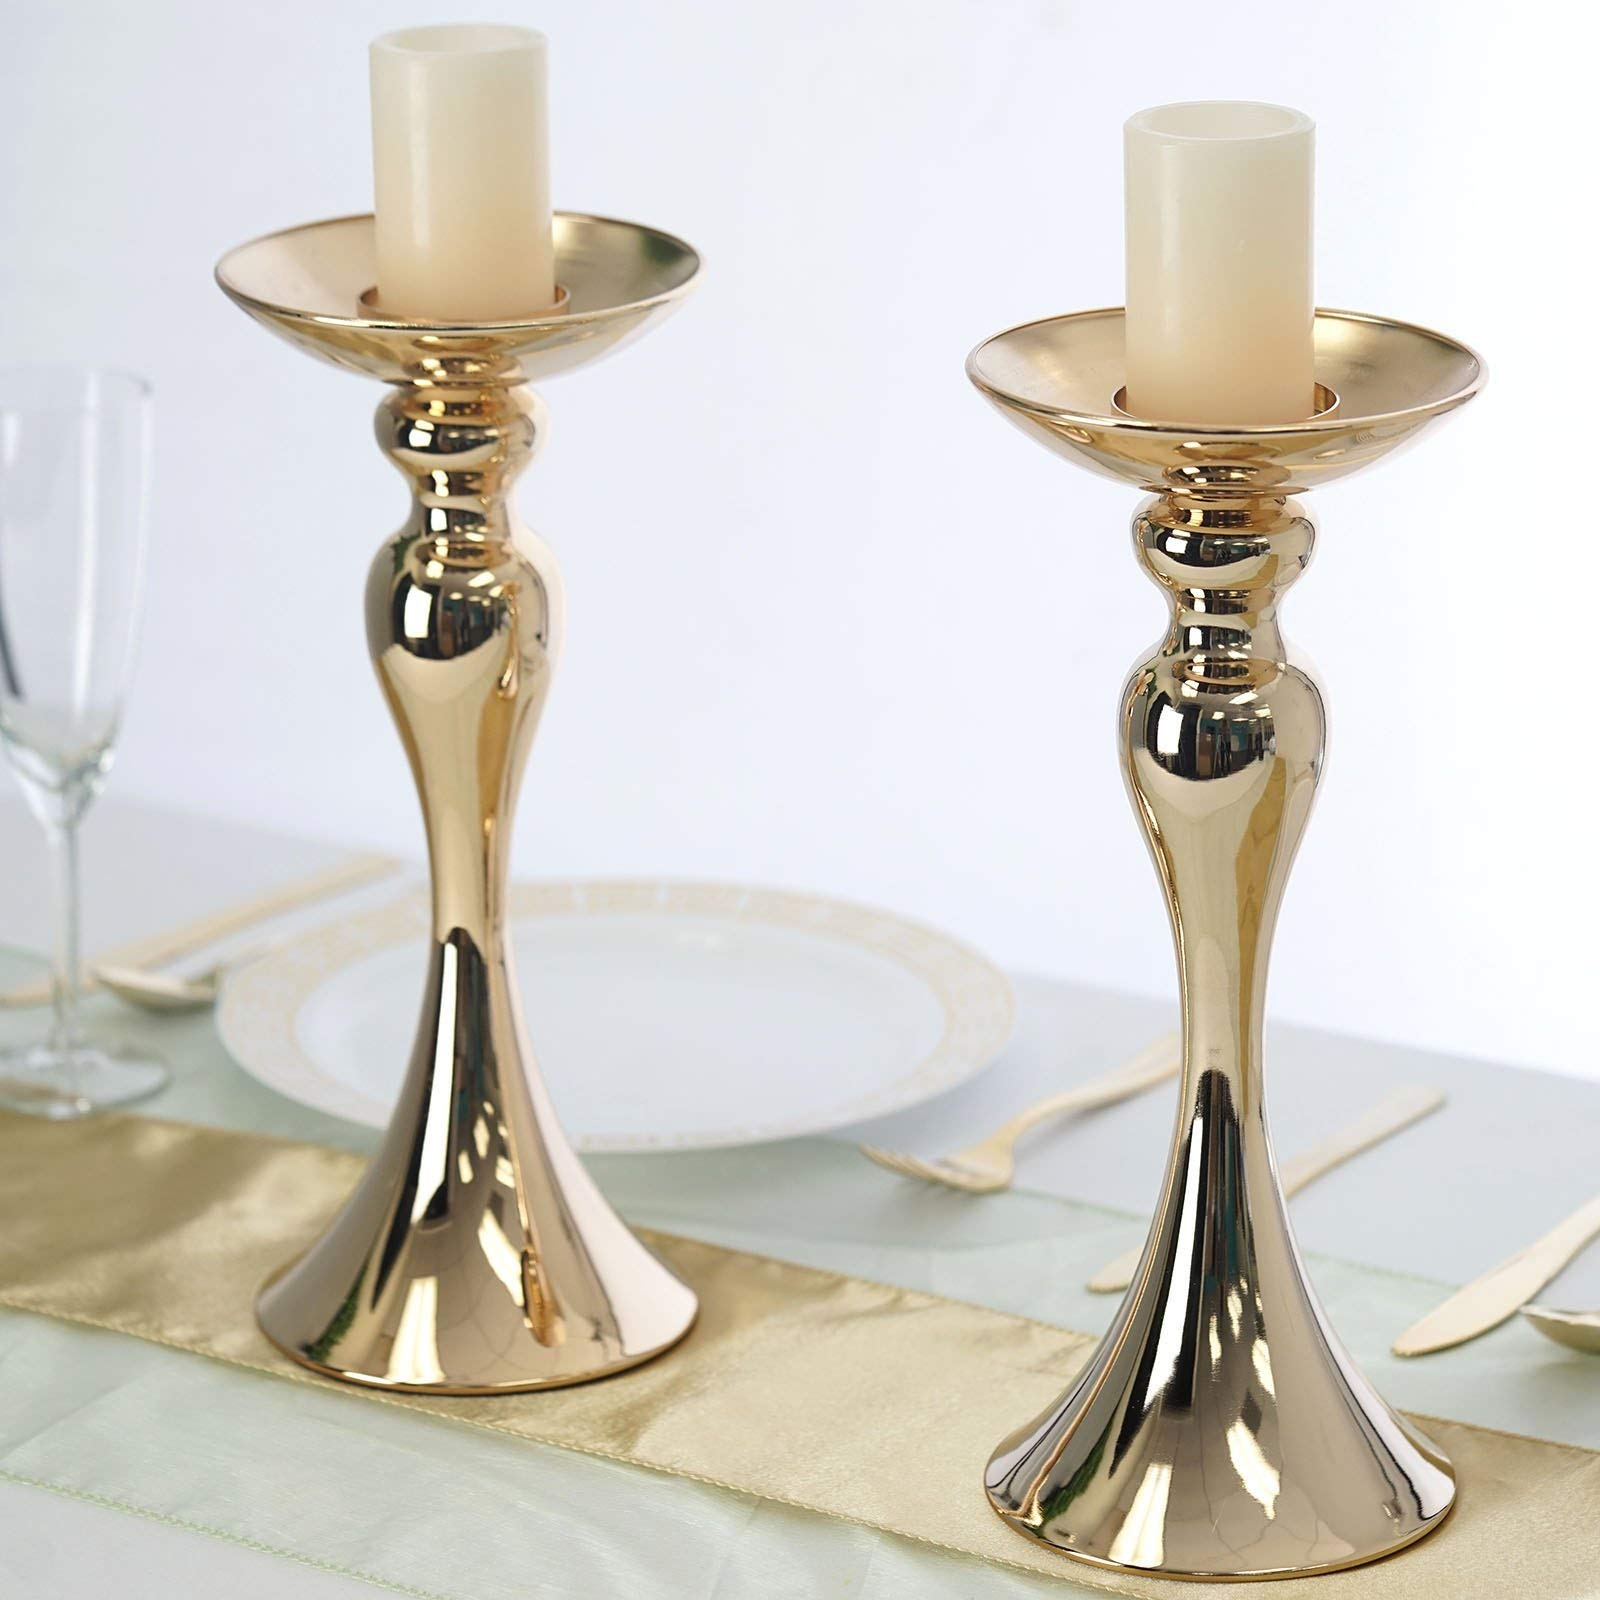 Efavormart 2 Pack Gold 12'' Tall Floral Stand Pillar Candle Holder Flower Feather Ball Centerpiece for Wedding Events Decoration